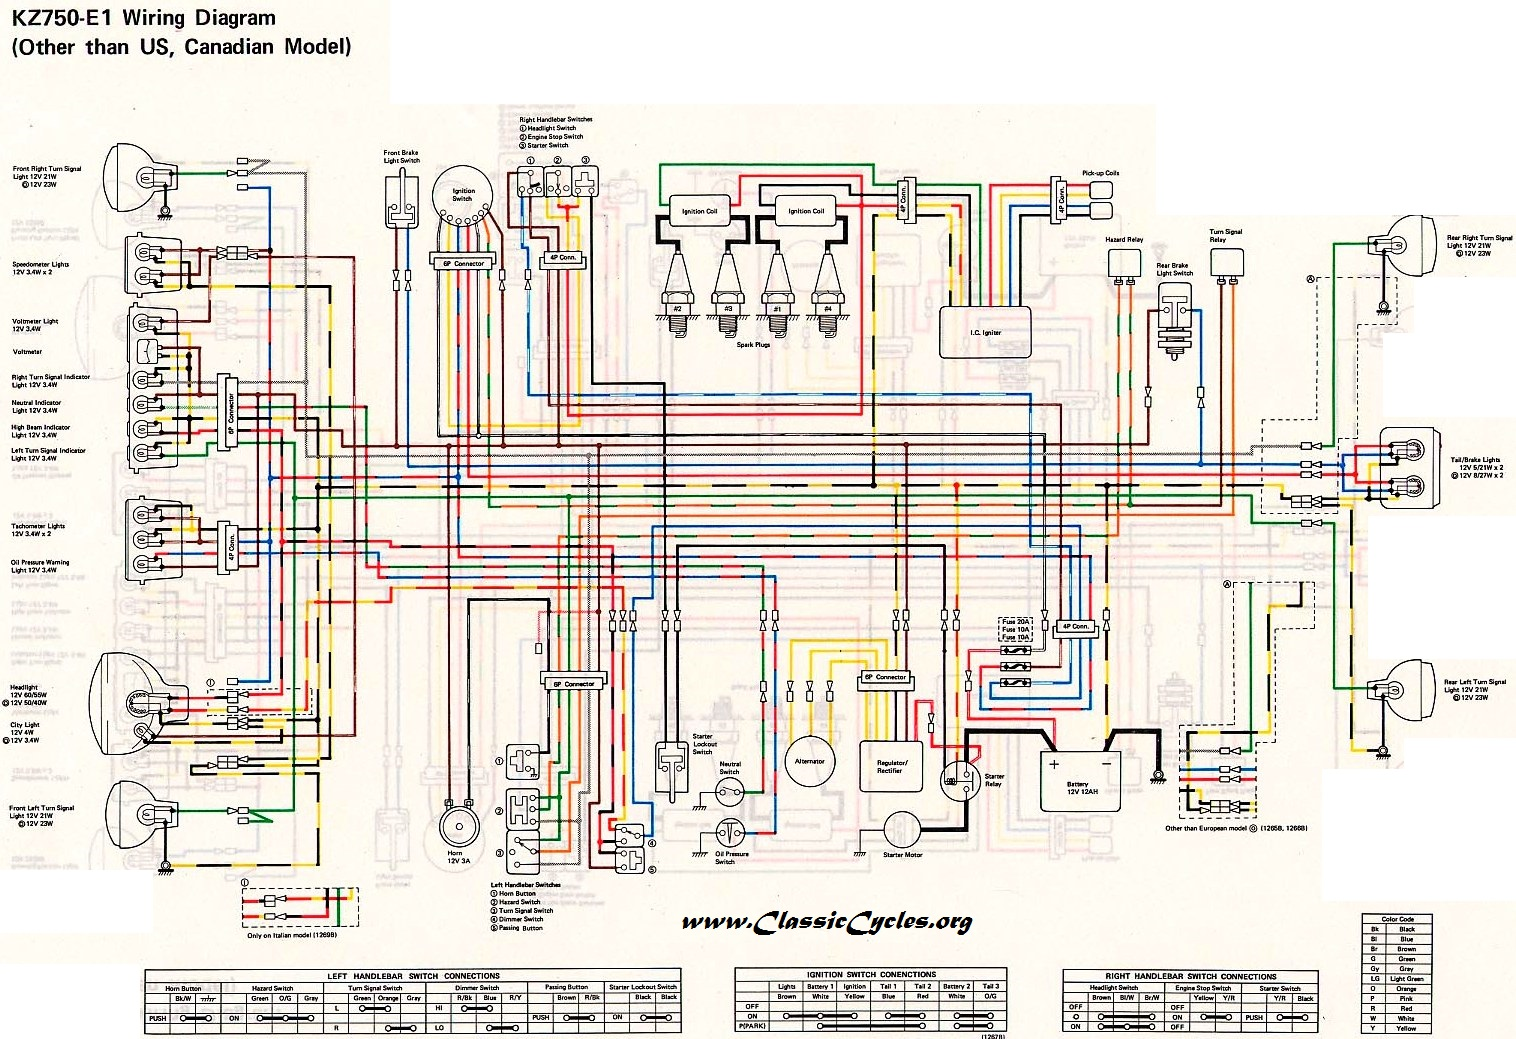 Diagram Honda City Zx Wiring Diagram Full Version Hd Quality Wiring Diagram Wiringteams Giure It